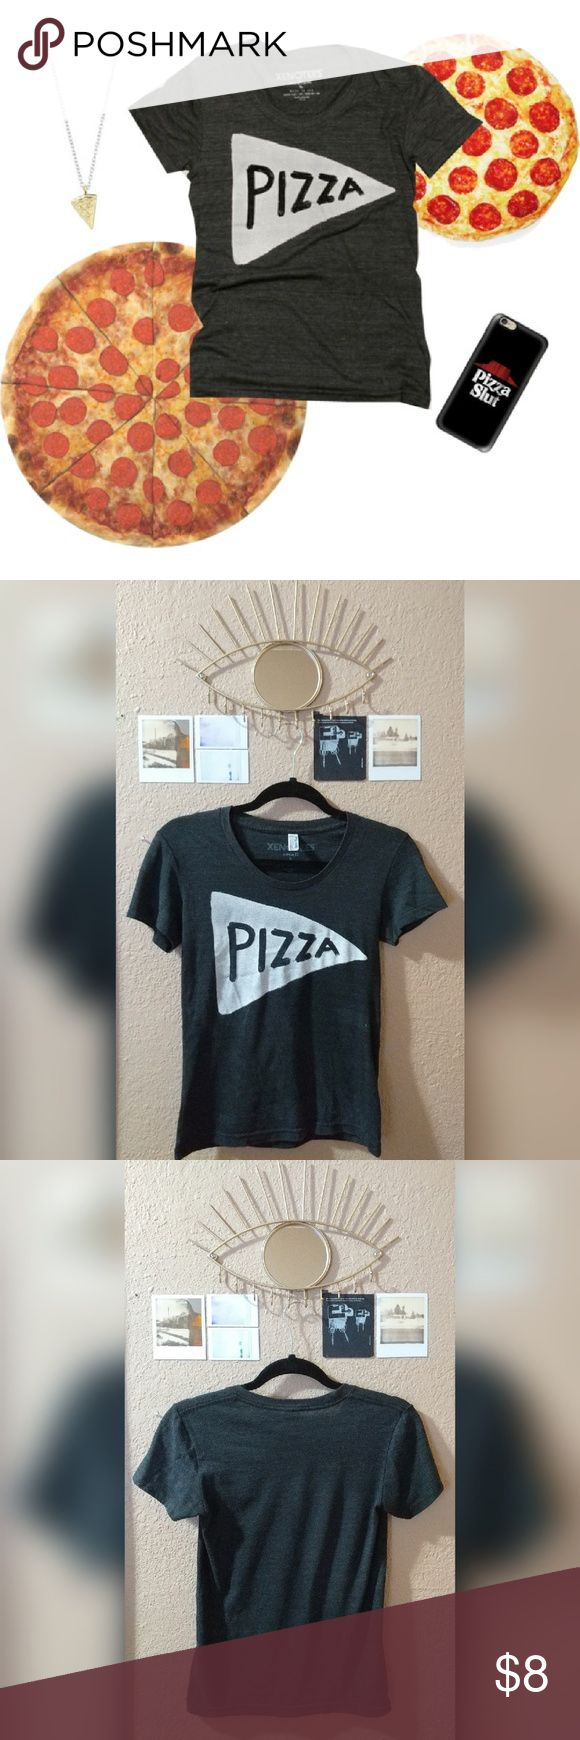 "Etsy Charcoal Gray ""Pizza"" Tee by Xenotees, small Dark grey ""Pizza"" tee bought off of Etsy by seller Xenotees. Design was hand painted and then screened unto this incredibly soft American Apparel t-shirt. Worn a few times, like new with no damage. American Apparel Tops Tees - Short Sleeve"